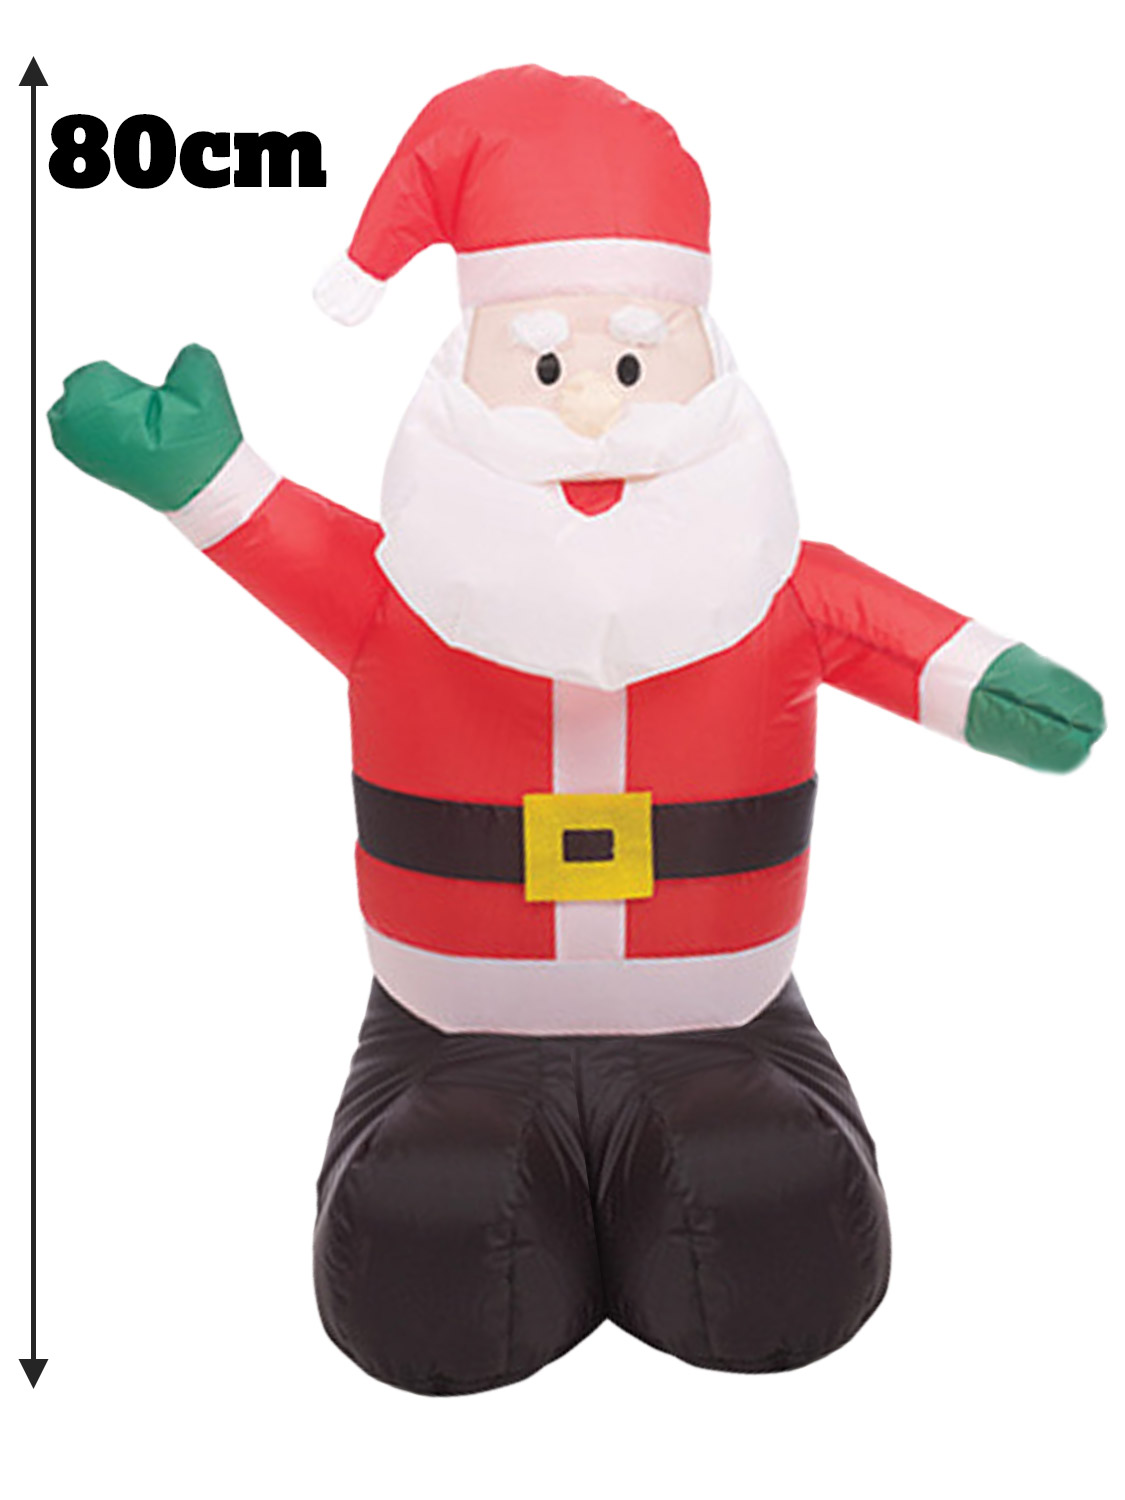 Pere Noel Decoration Interieur Inflatable 80cm Father Christmas Santa Snowman Decorations